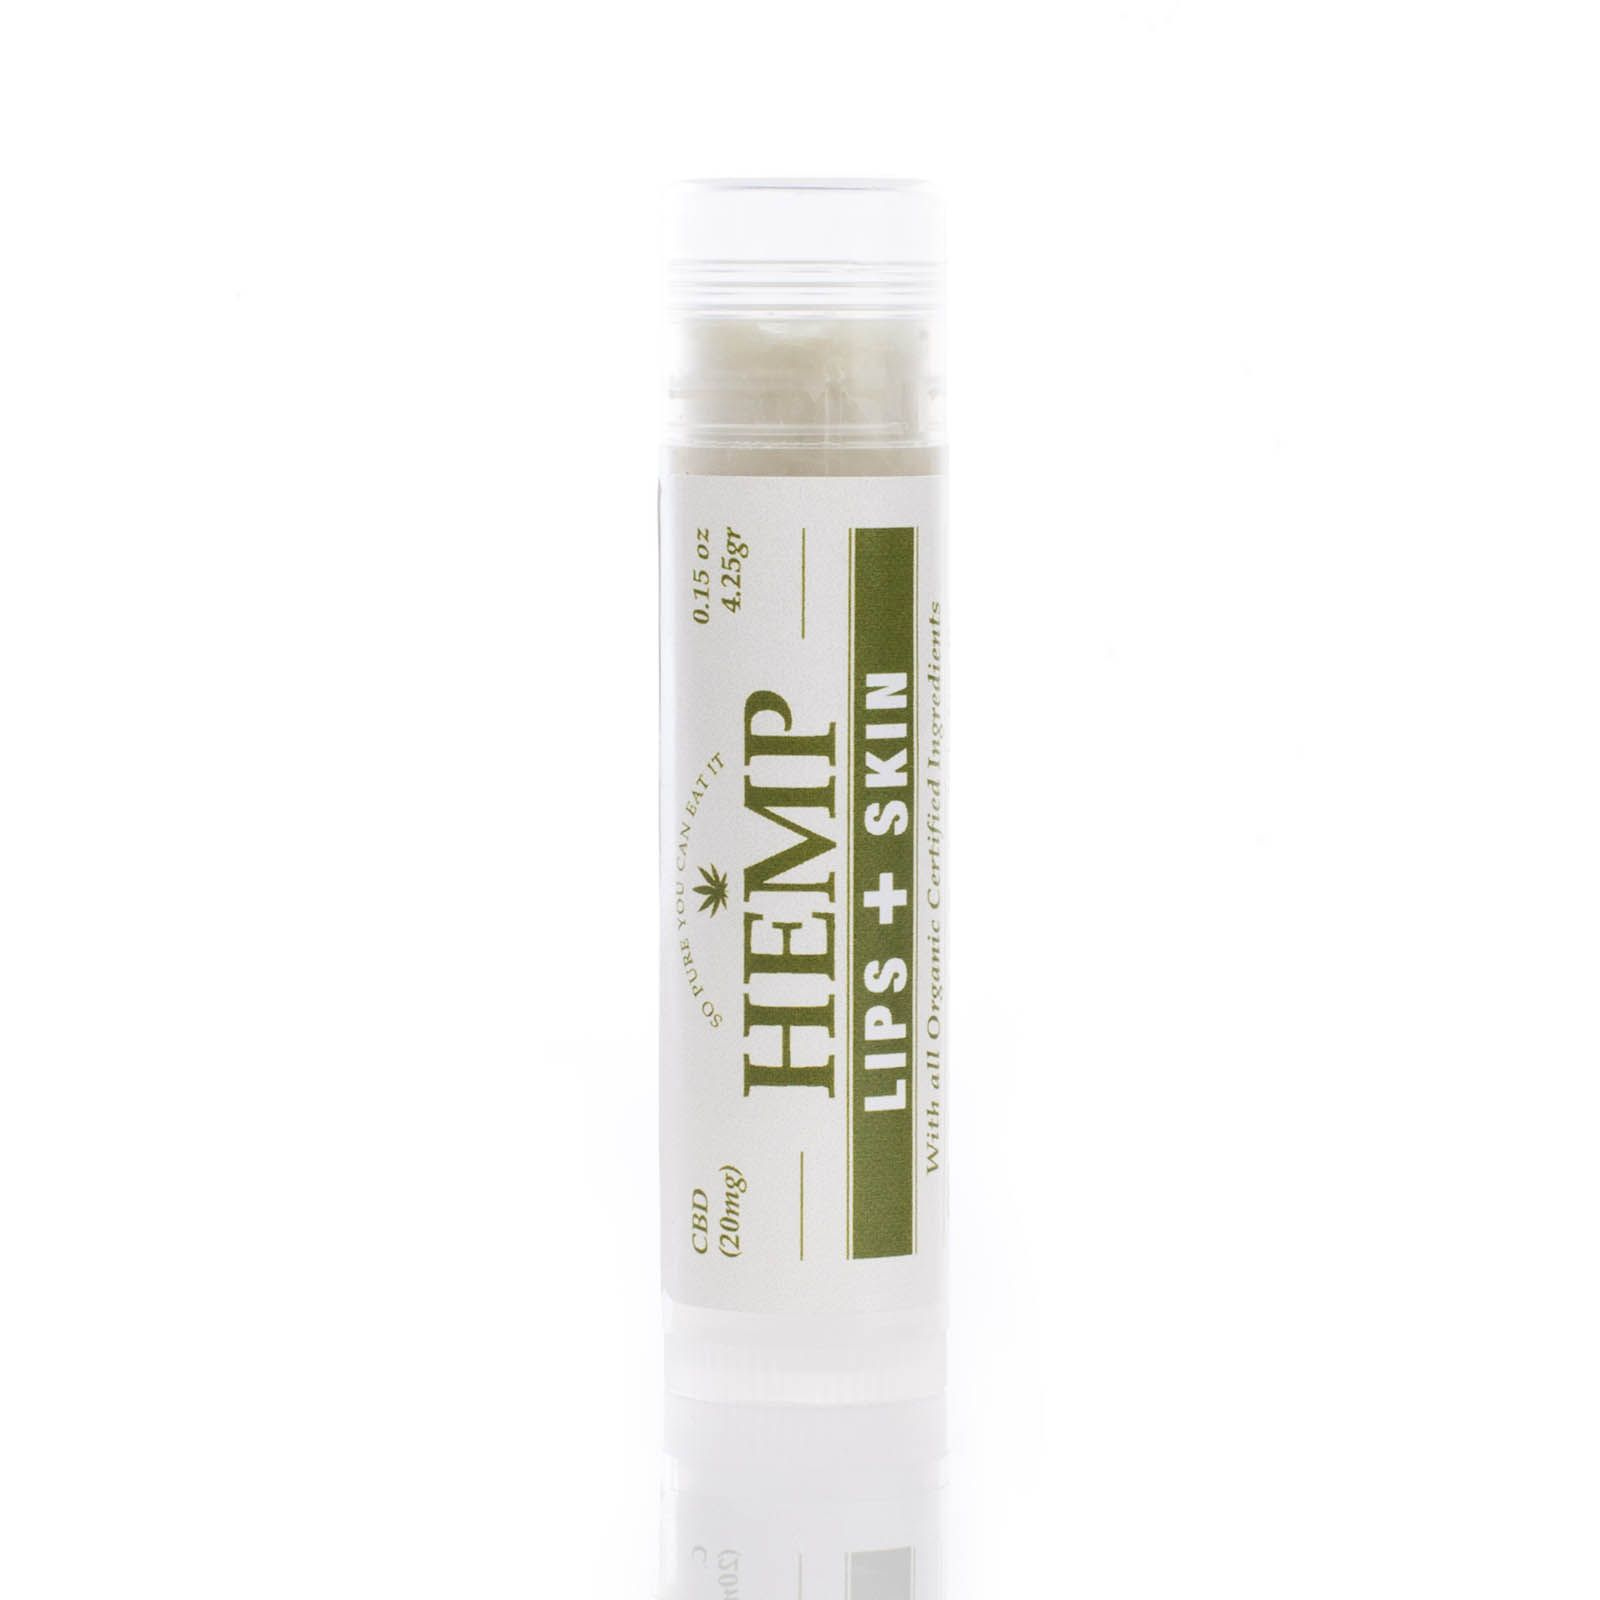 CBD Lip Balm 20 mg 0.15 oz. (4.3 g)